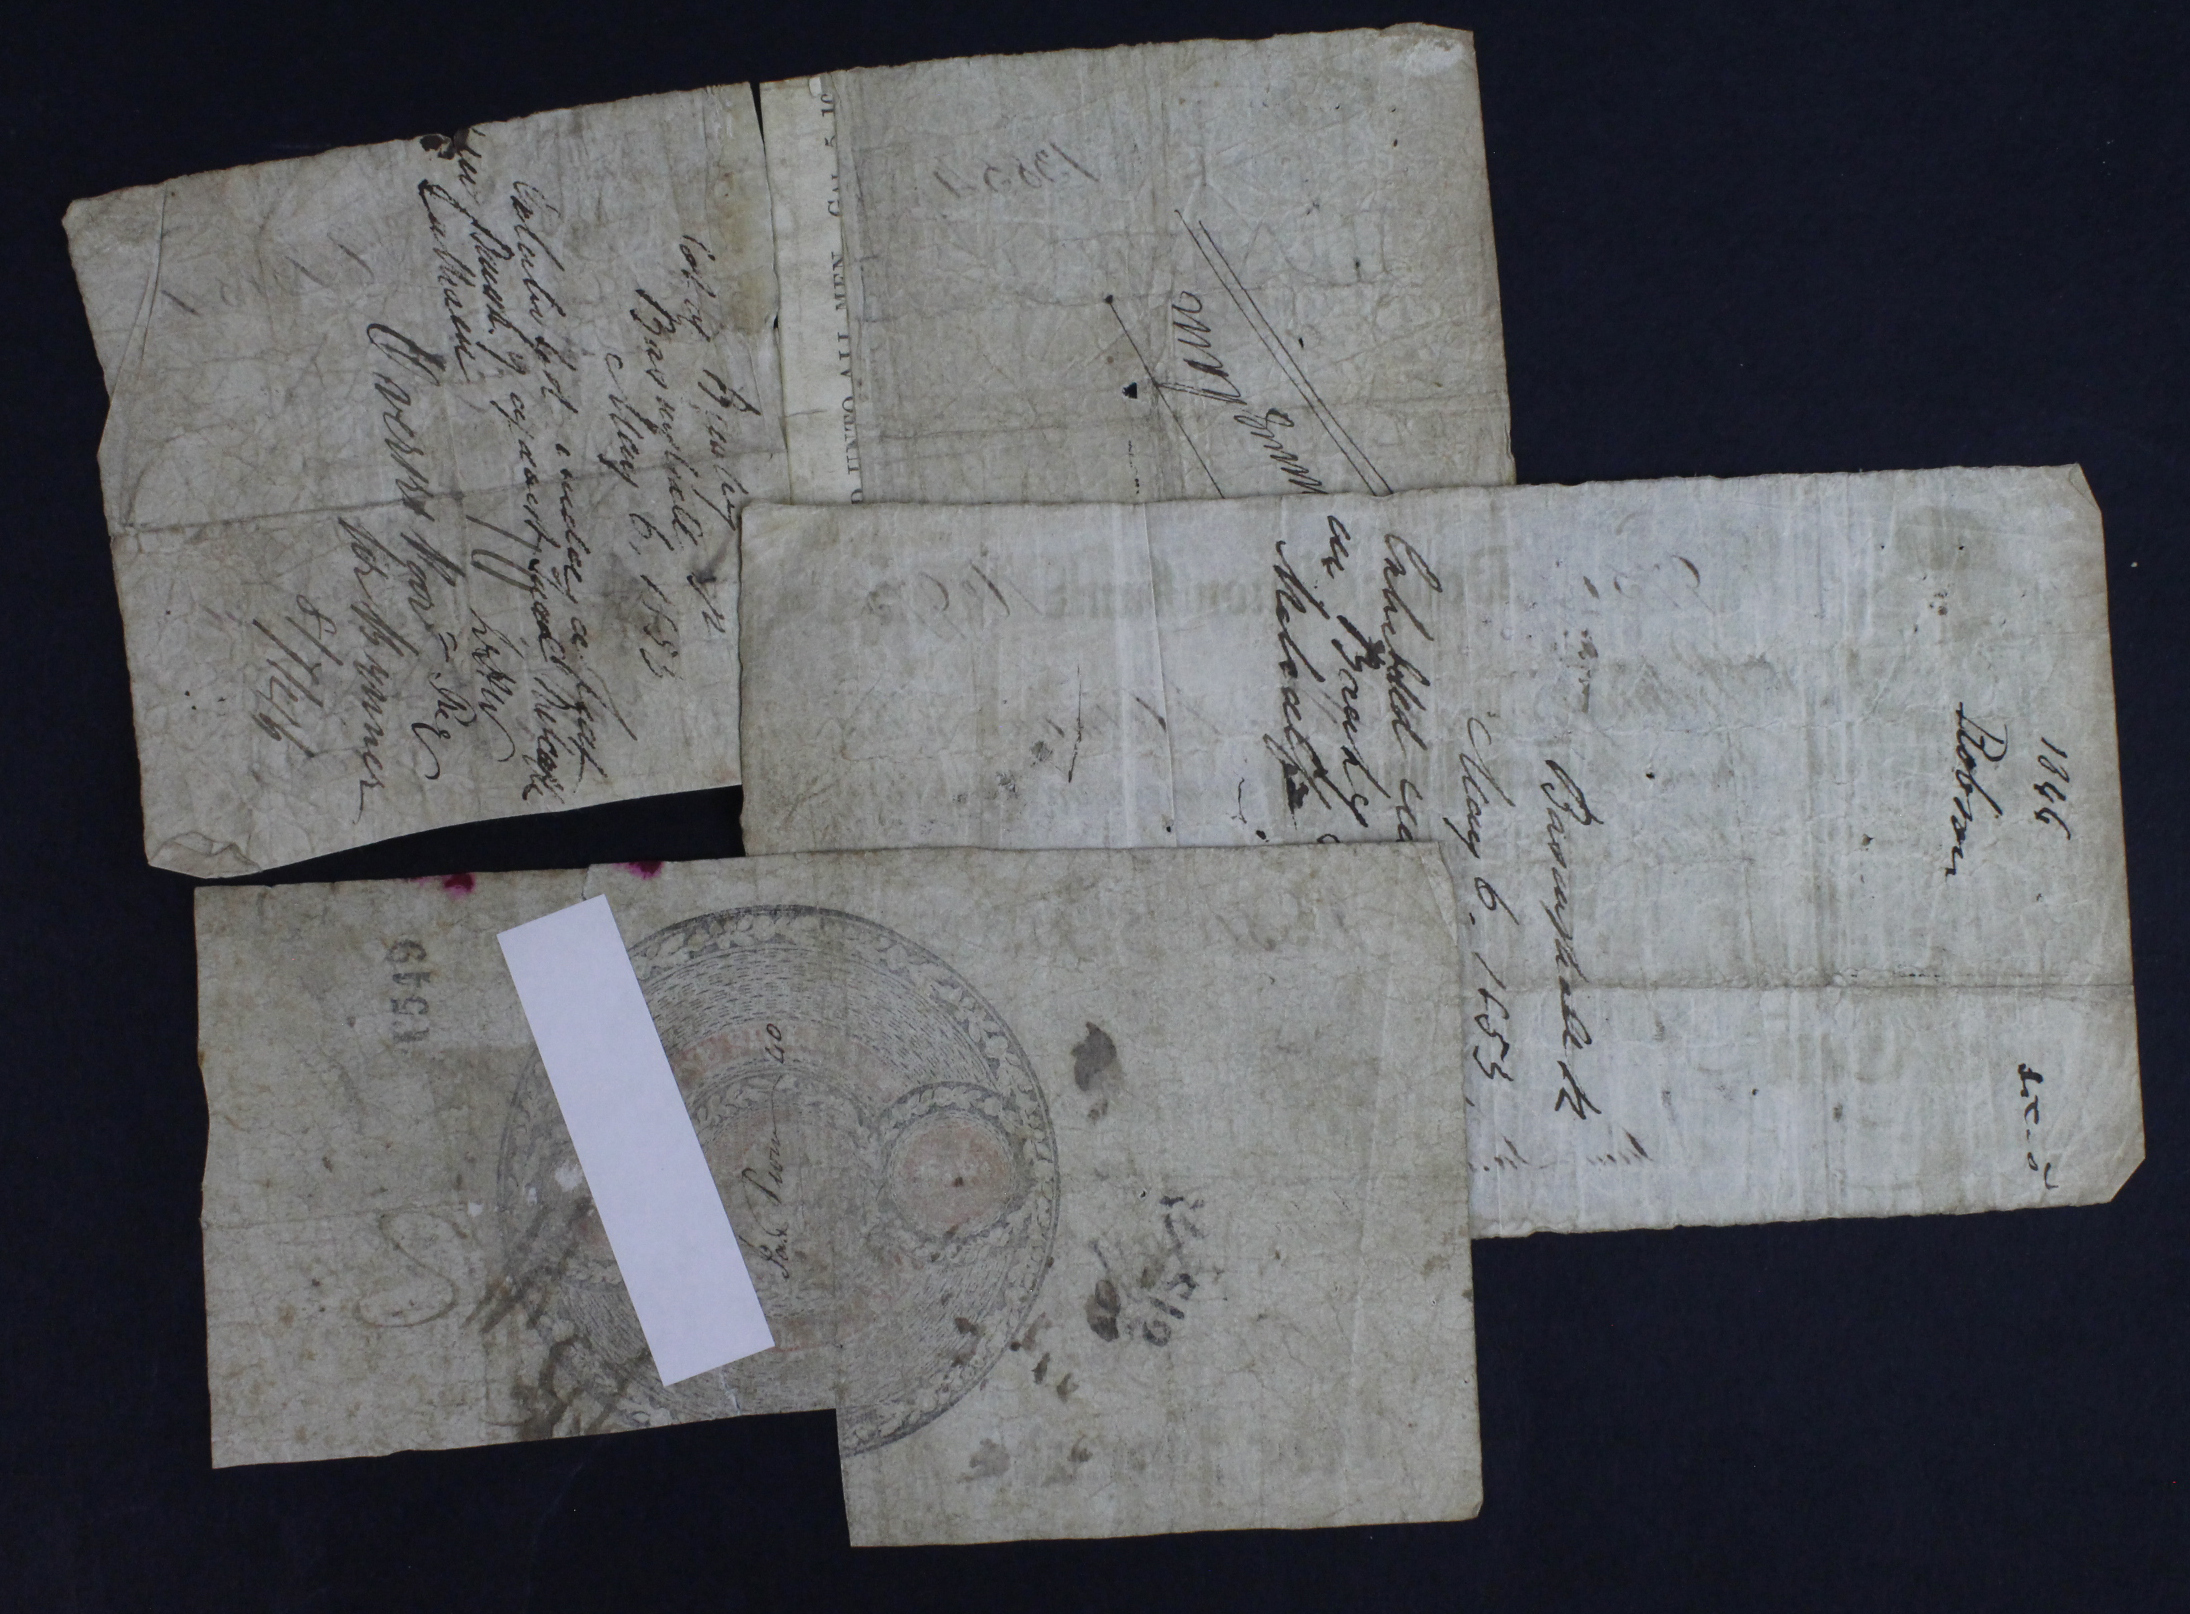 Provincial Notes (3), Dover Union Bank 5 Pounds and 10 Pounds dated 1846, serial No. 13854 & 975 for - Image 2 of 2